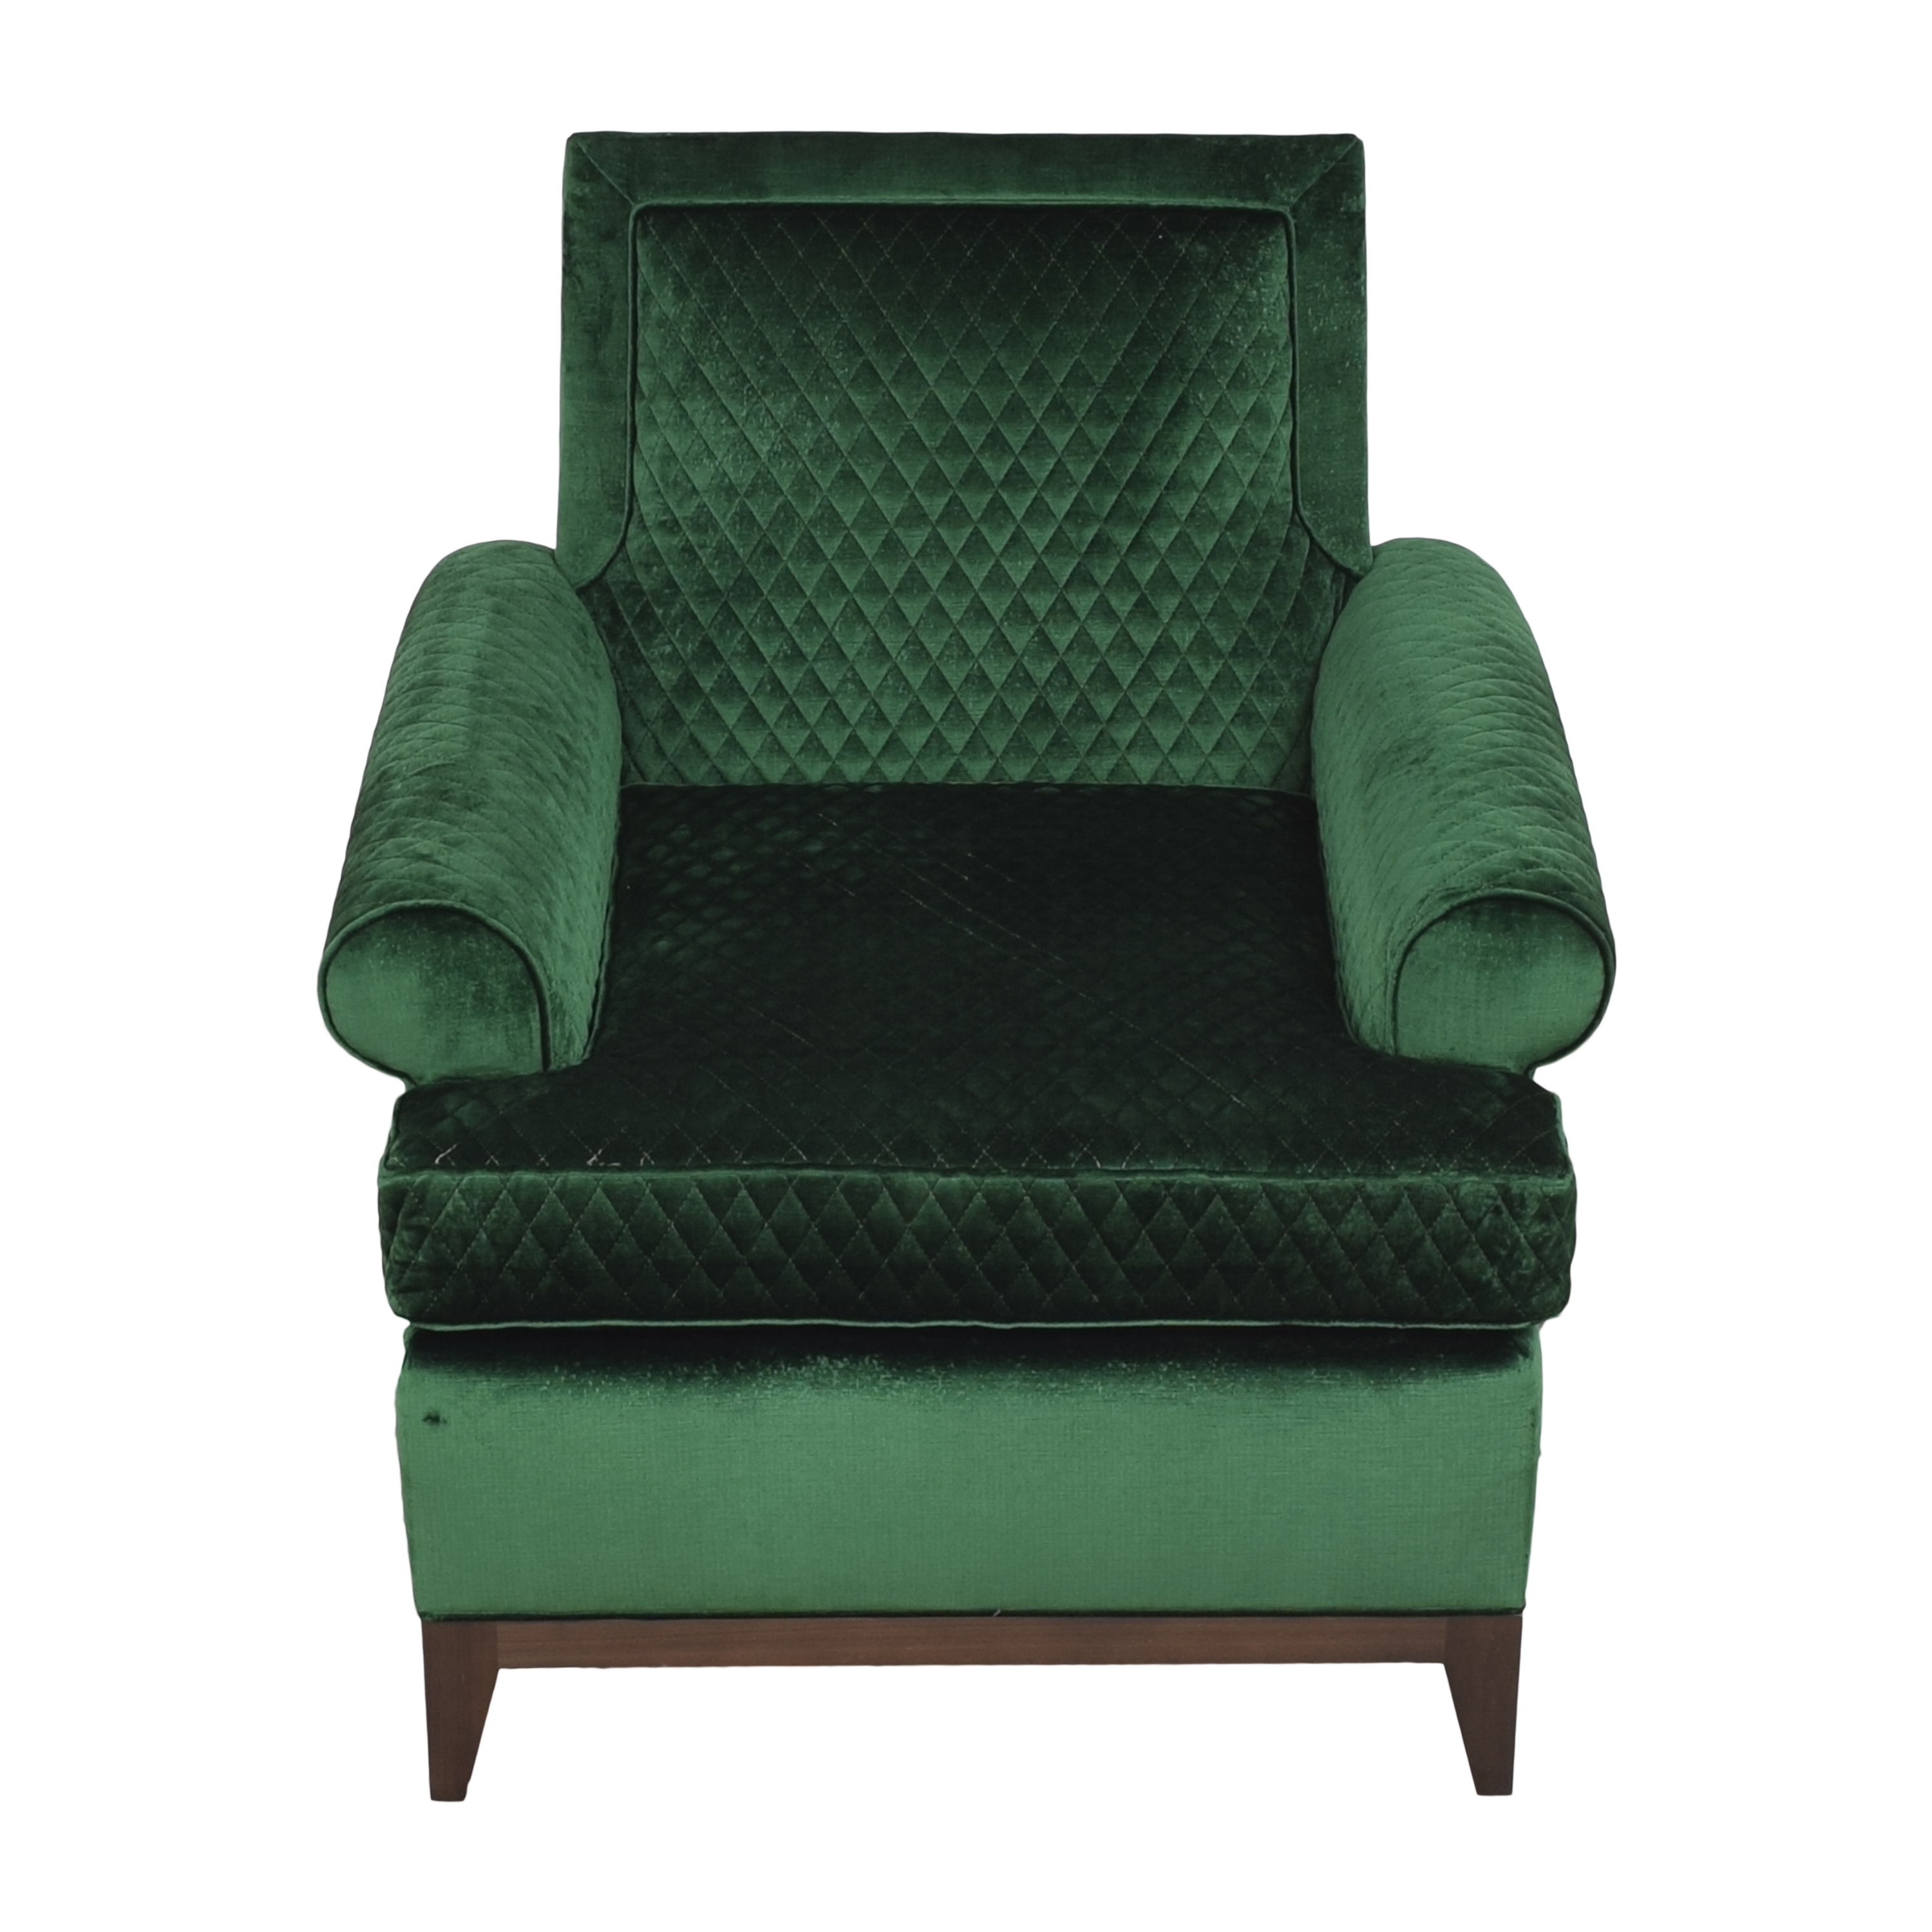 shop The New Traditionalists Quilted Arm Chair The New Traditionalists Chairs